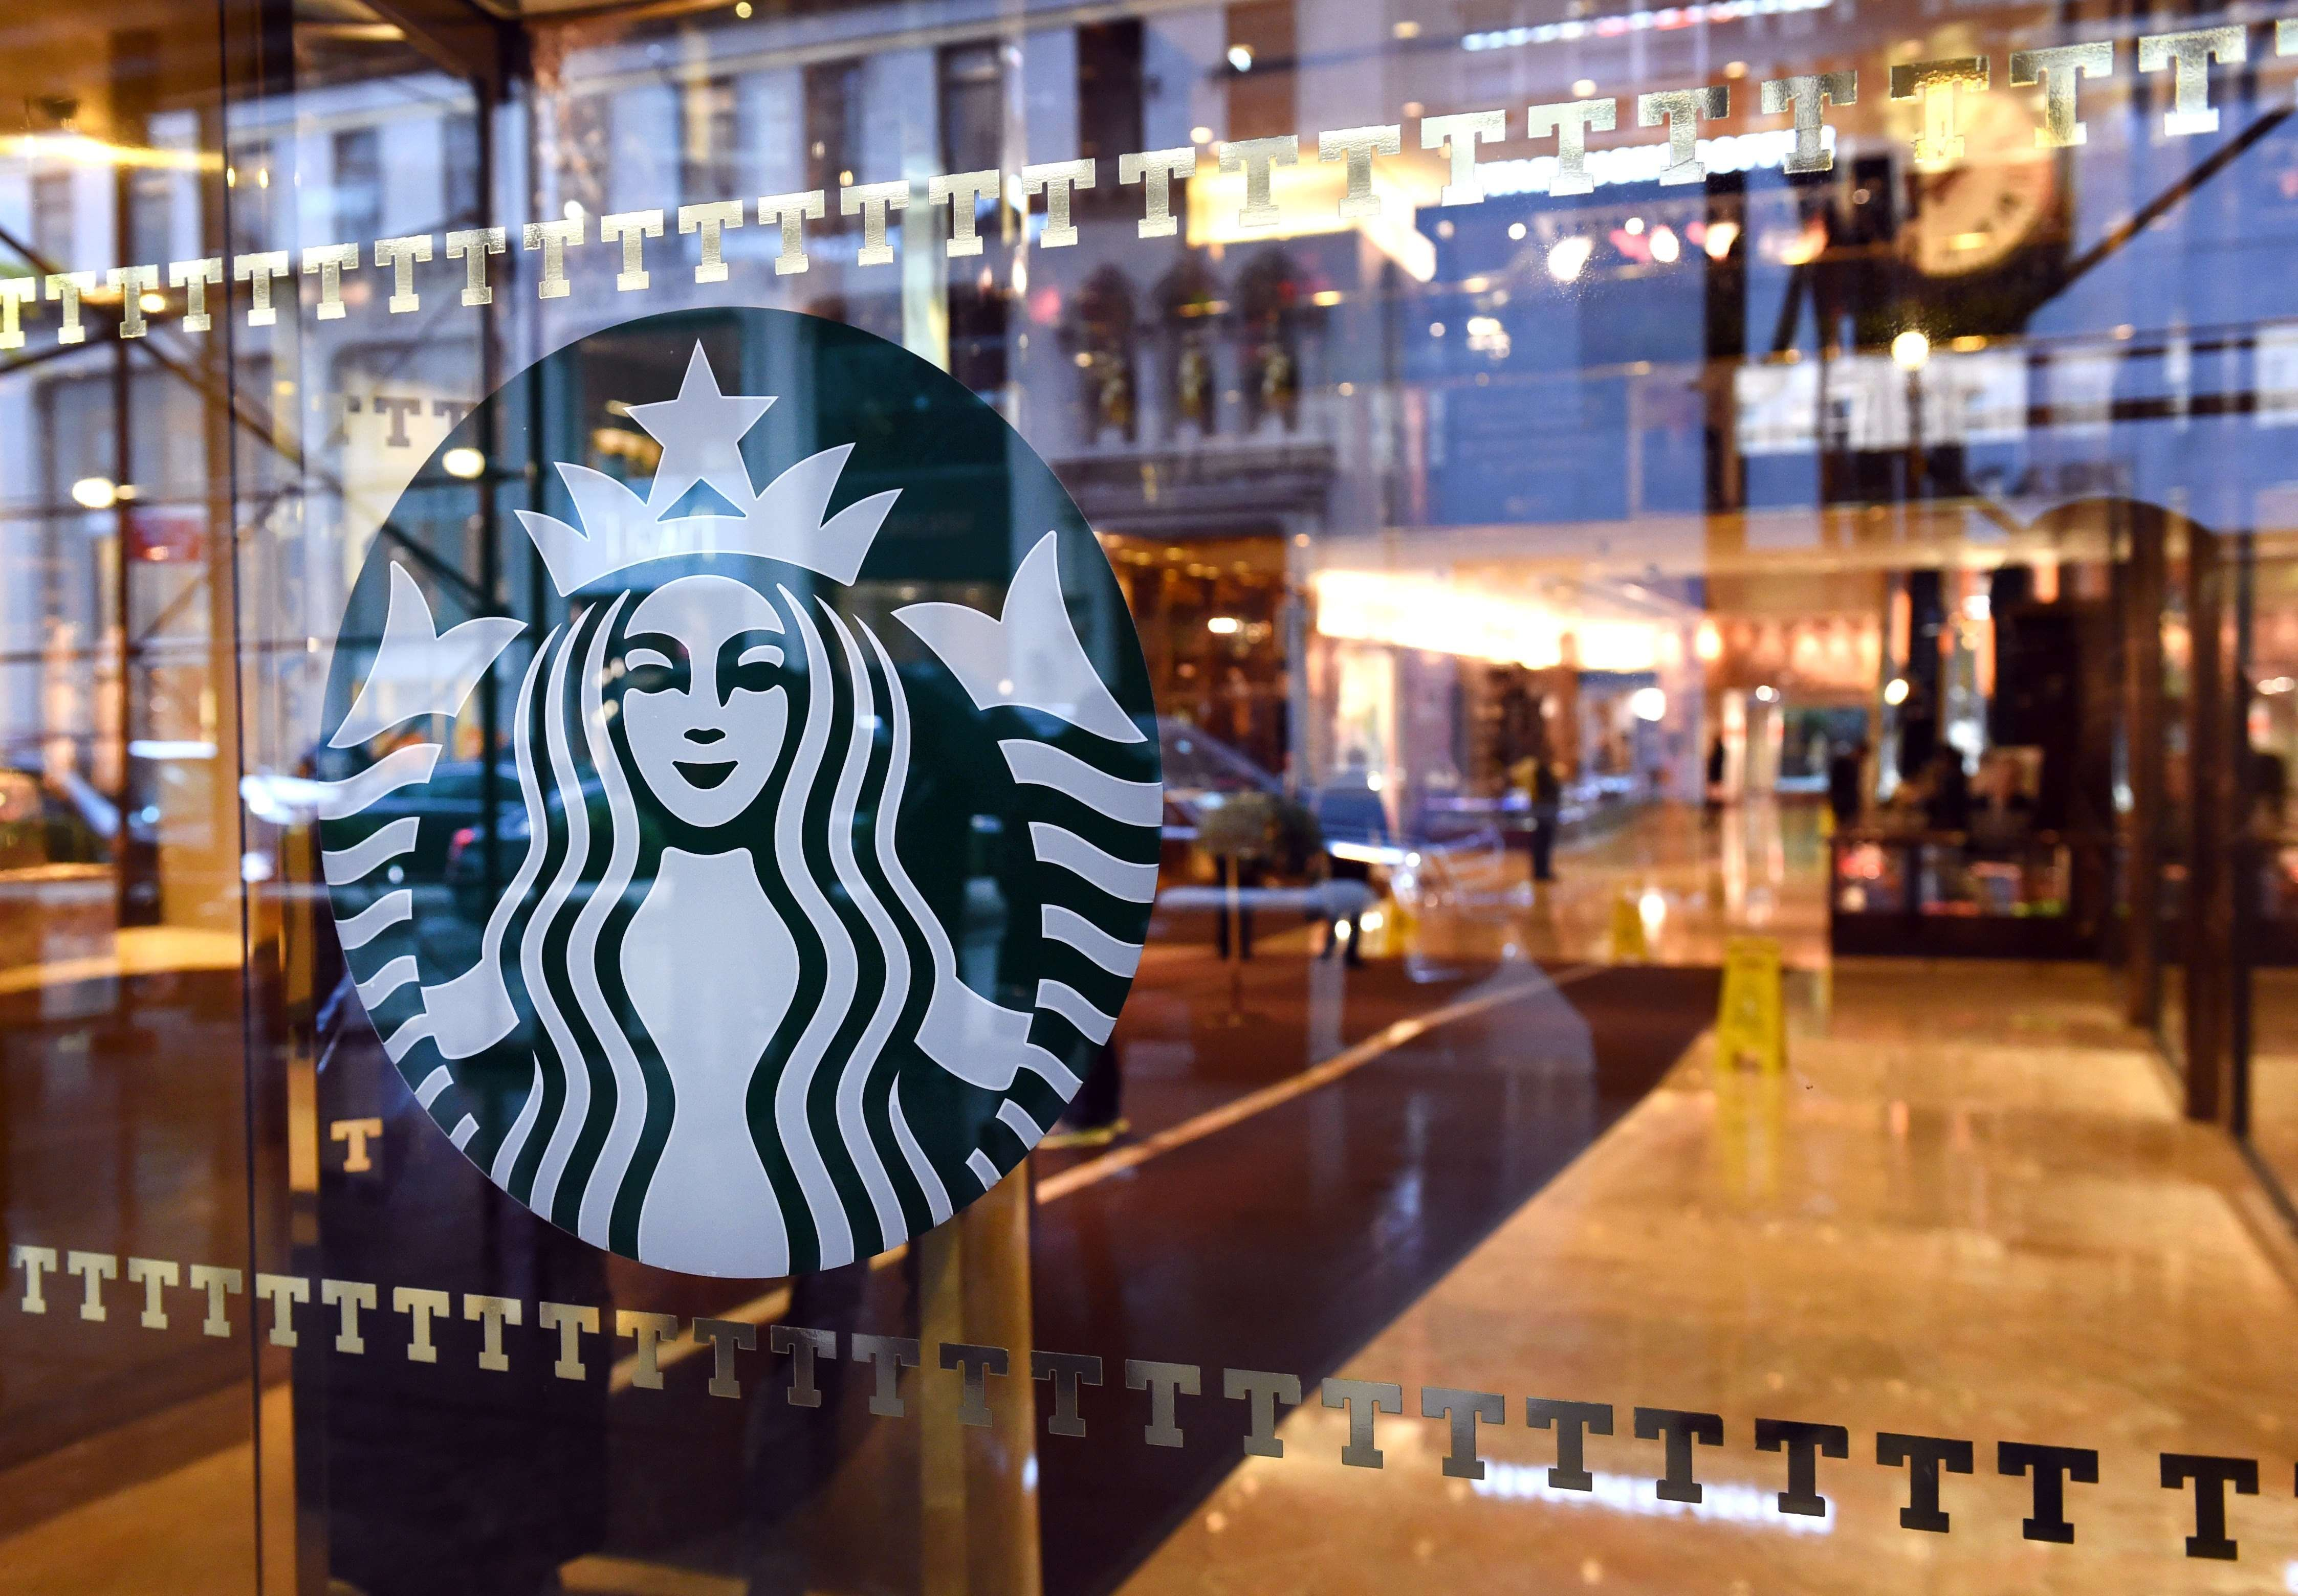 The Starbucks sign is seen at a store located in Trump Tower on 5th Avenue in New York Nov. 10, 2015.